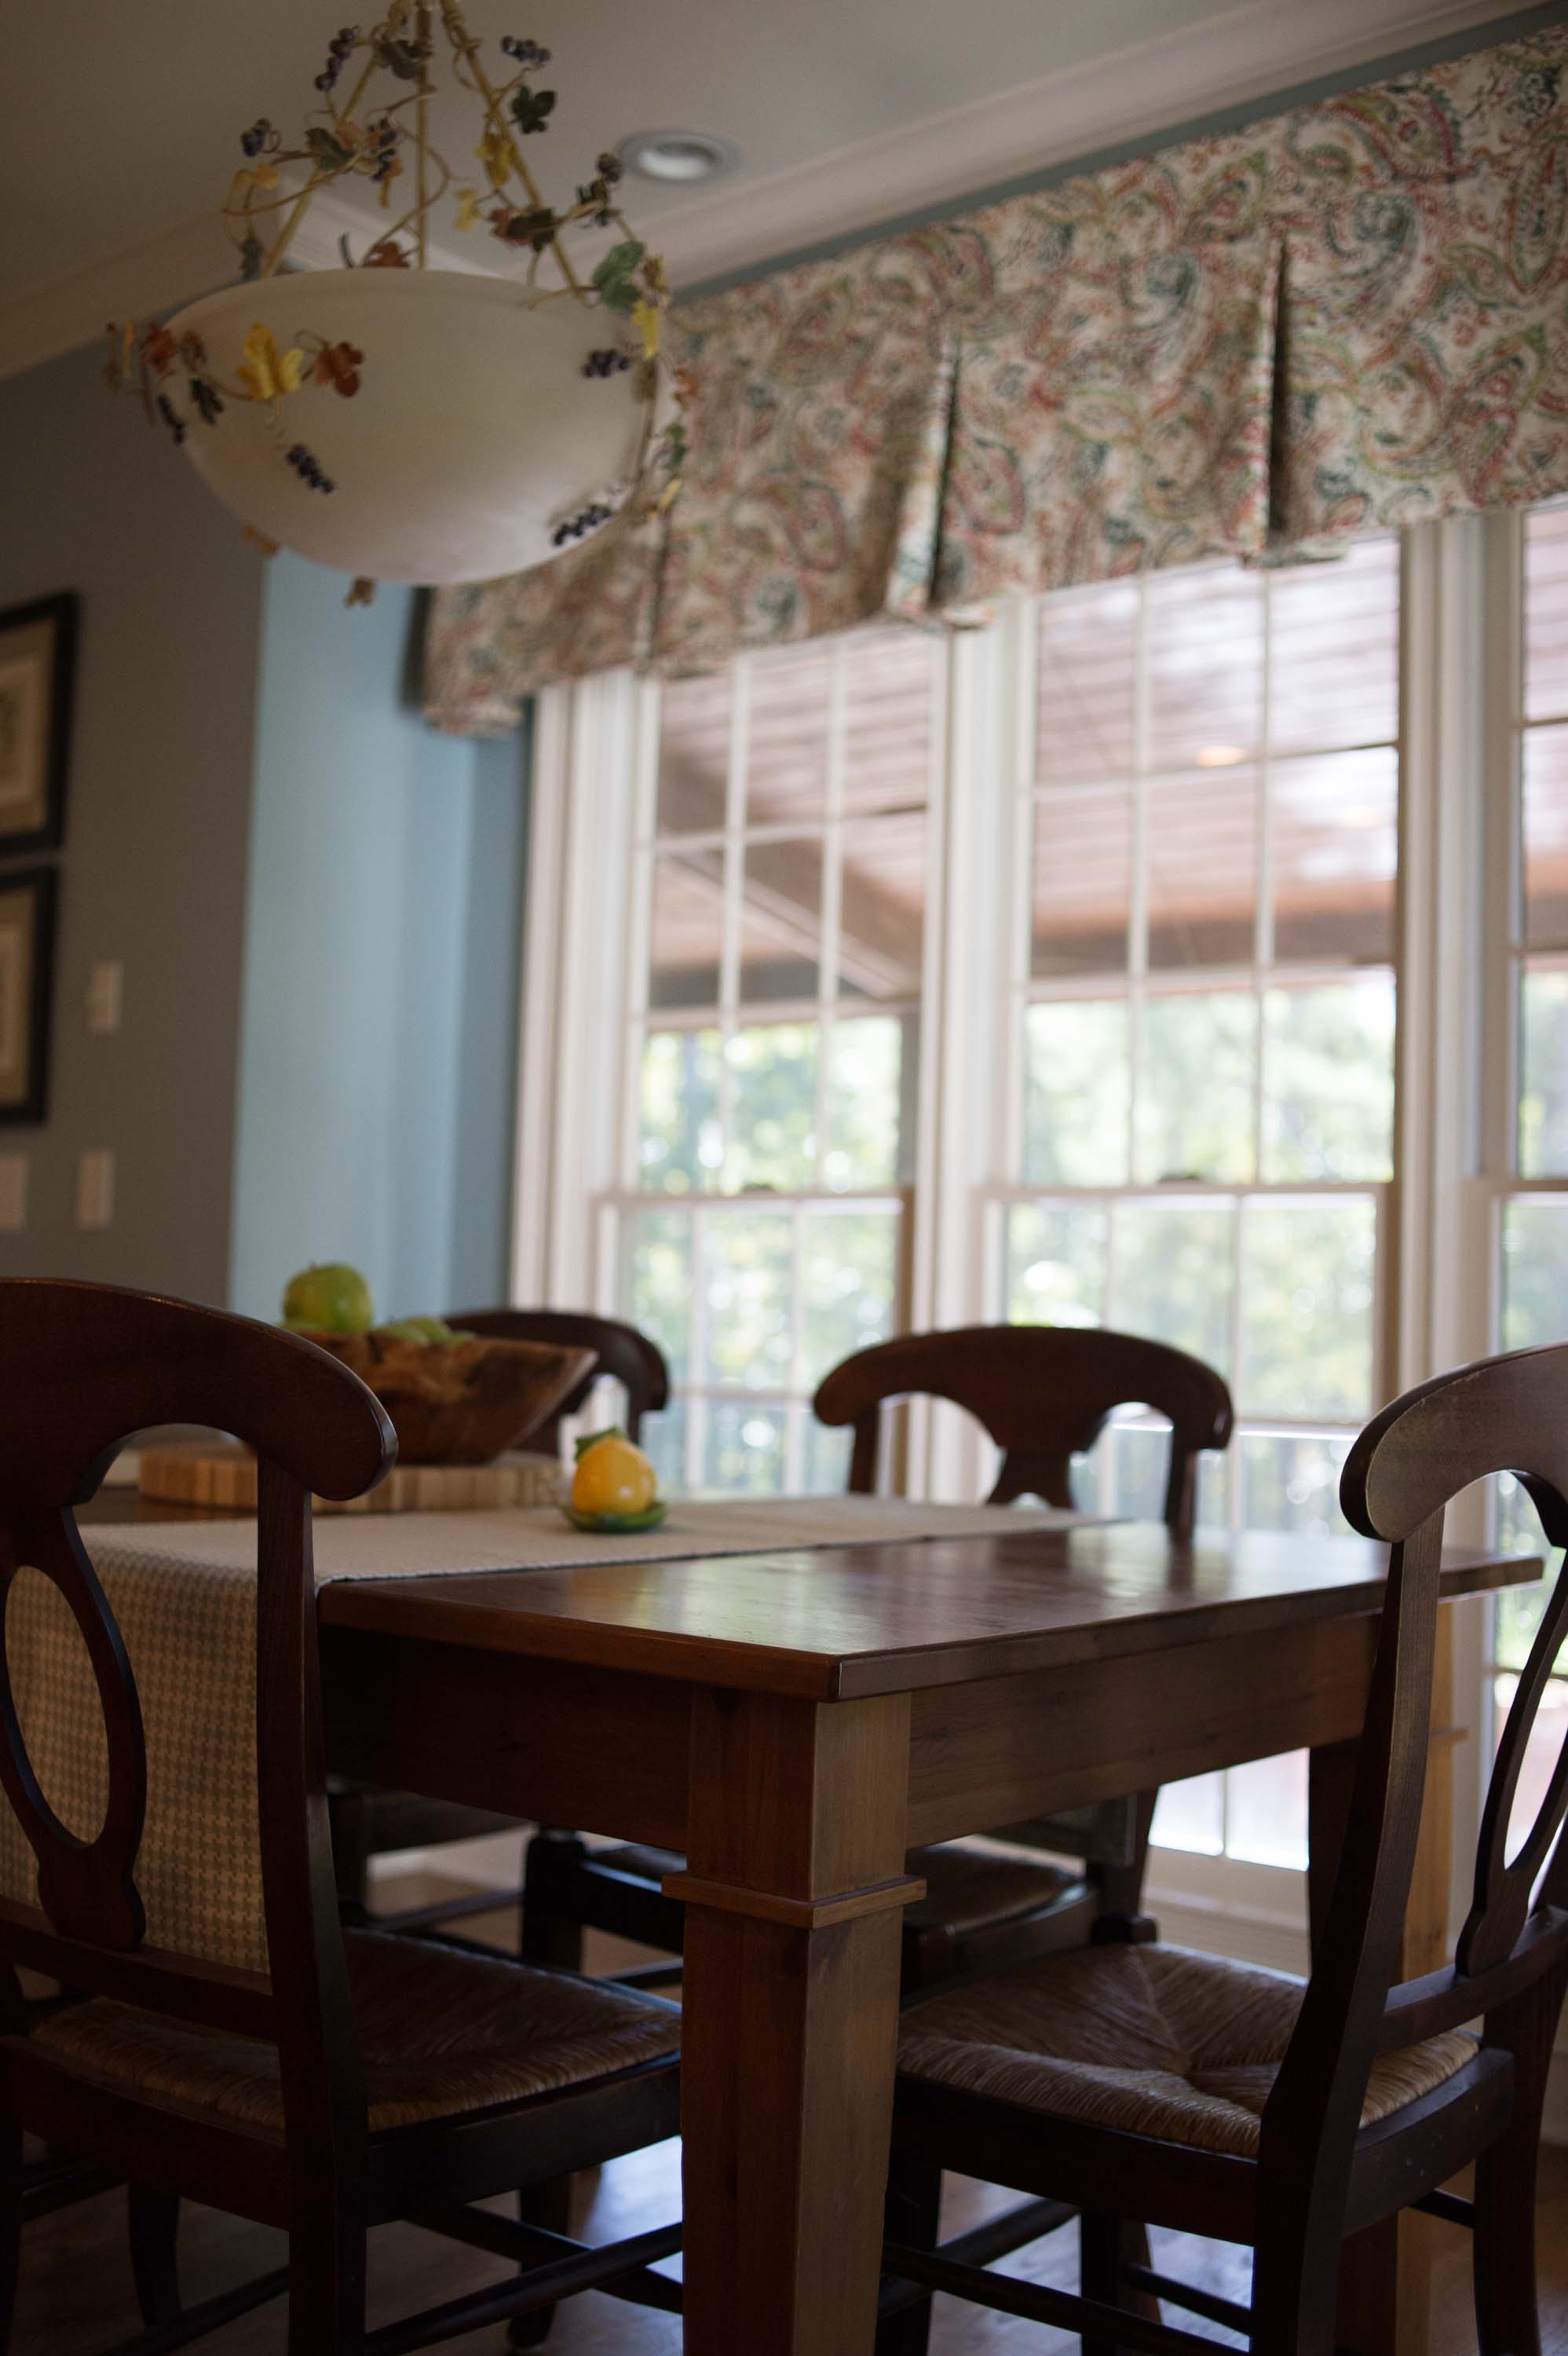 Dining room with wooden table and soft seat chairs